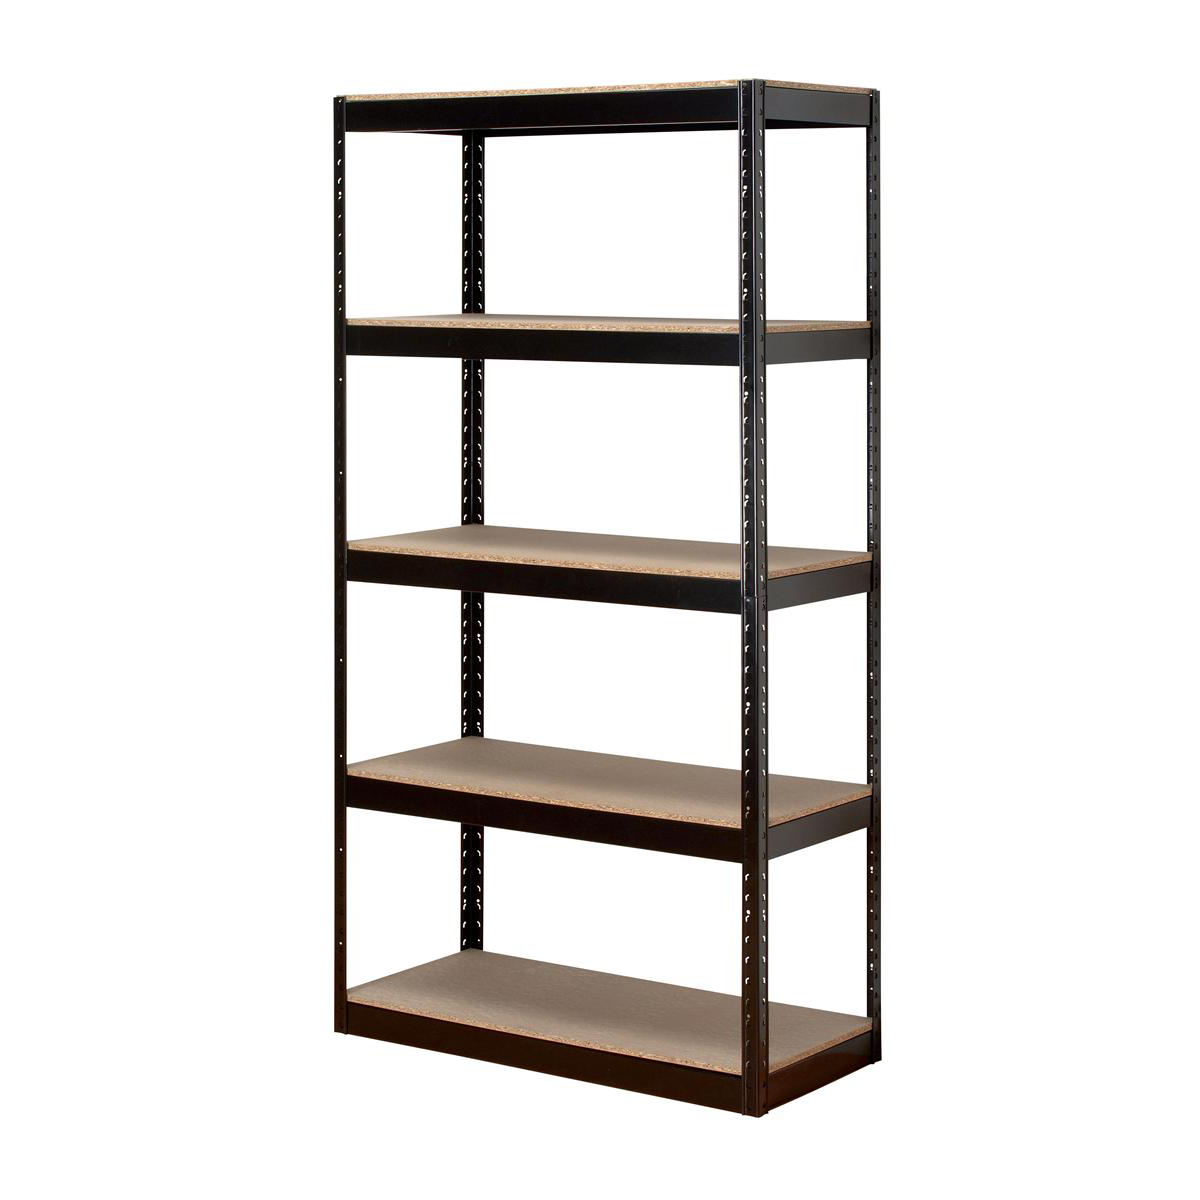 Over 1200mm High Trexus Storage Shelving Unit Heavy-duty Boltless 5 Shelves Capacity 150kg Black Ref SP414581